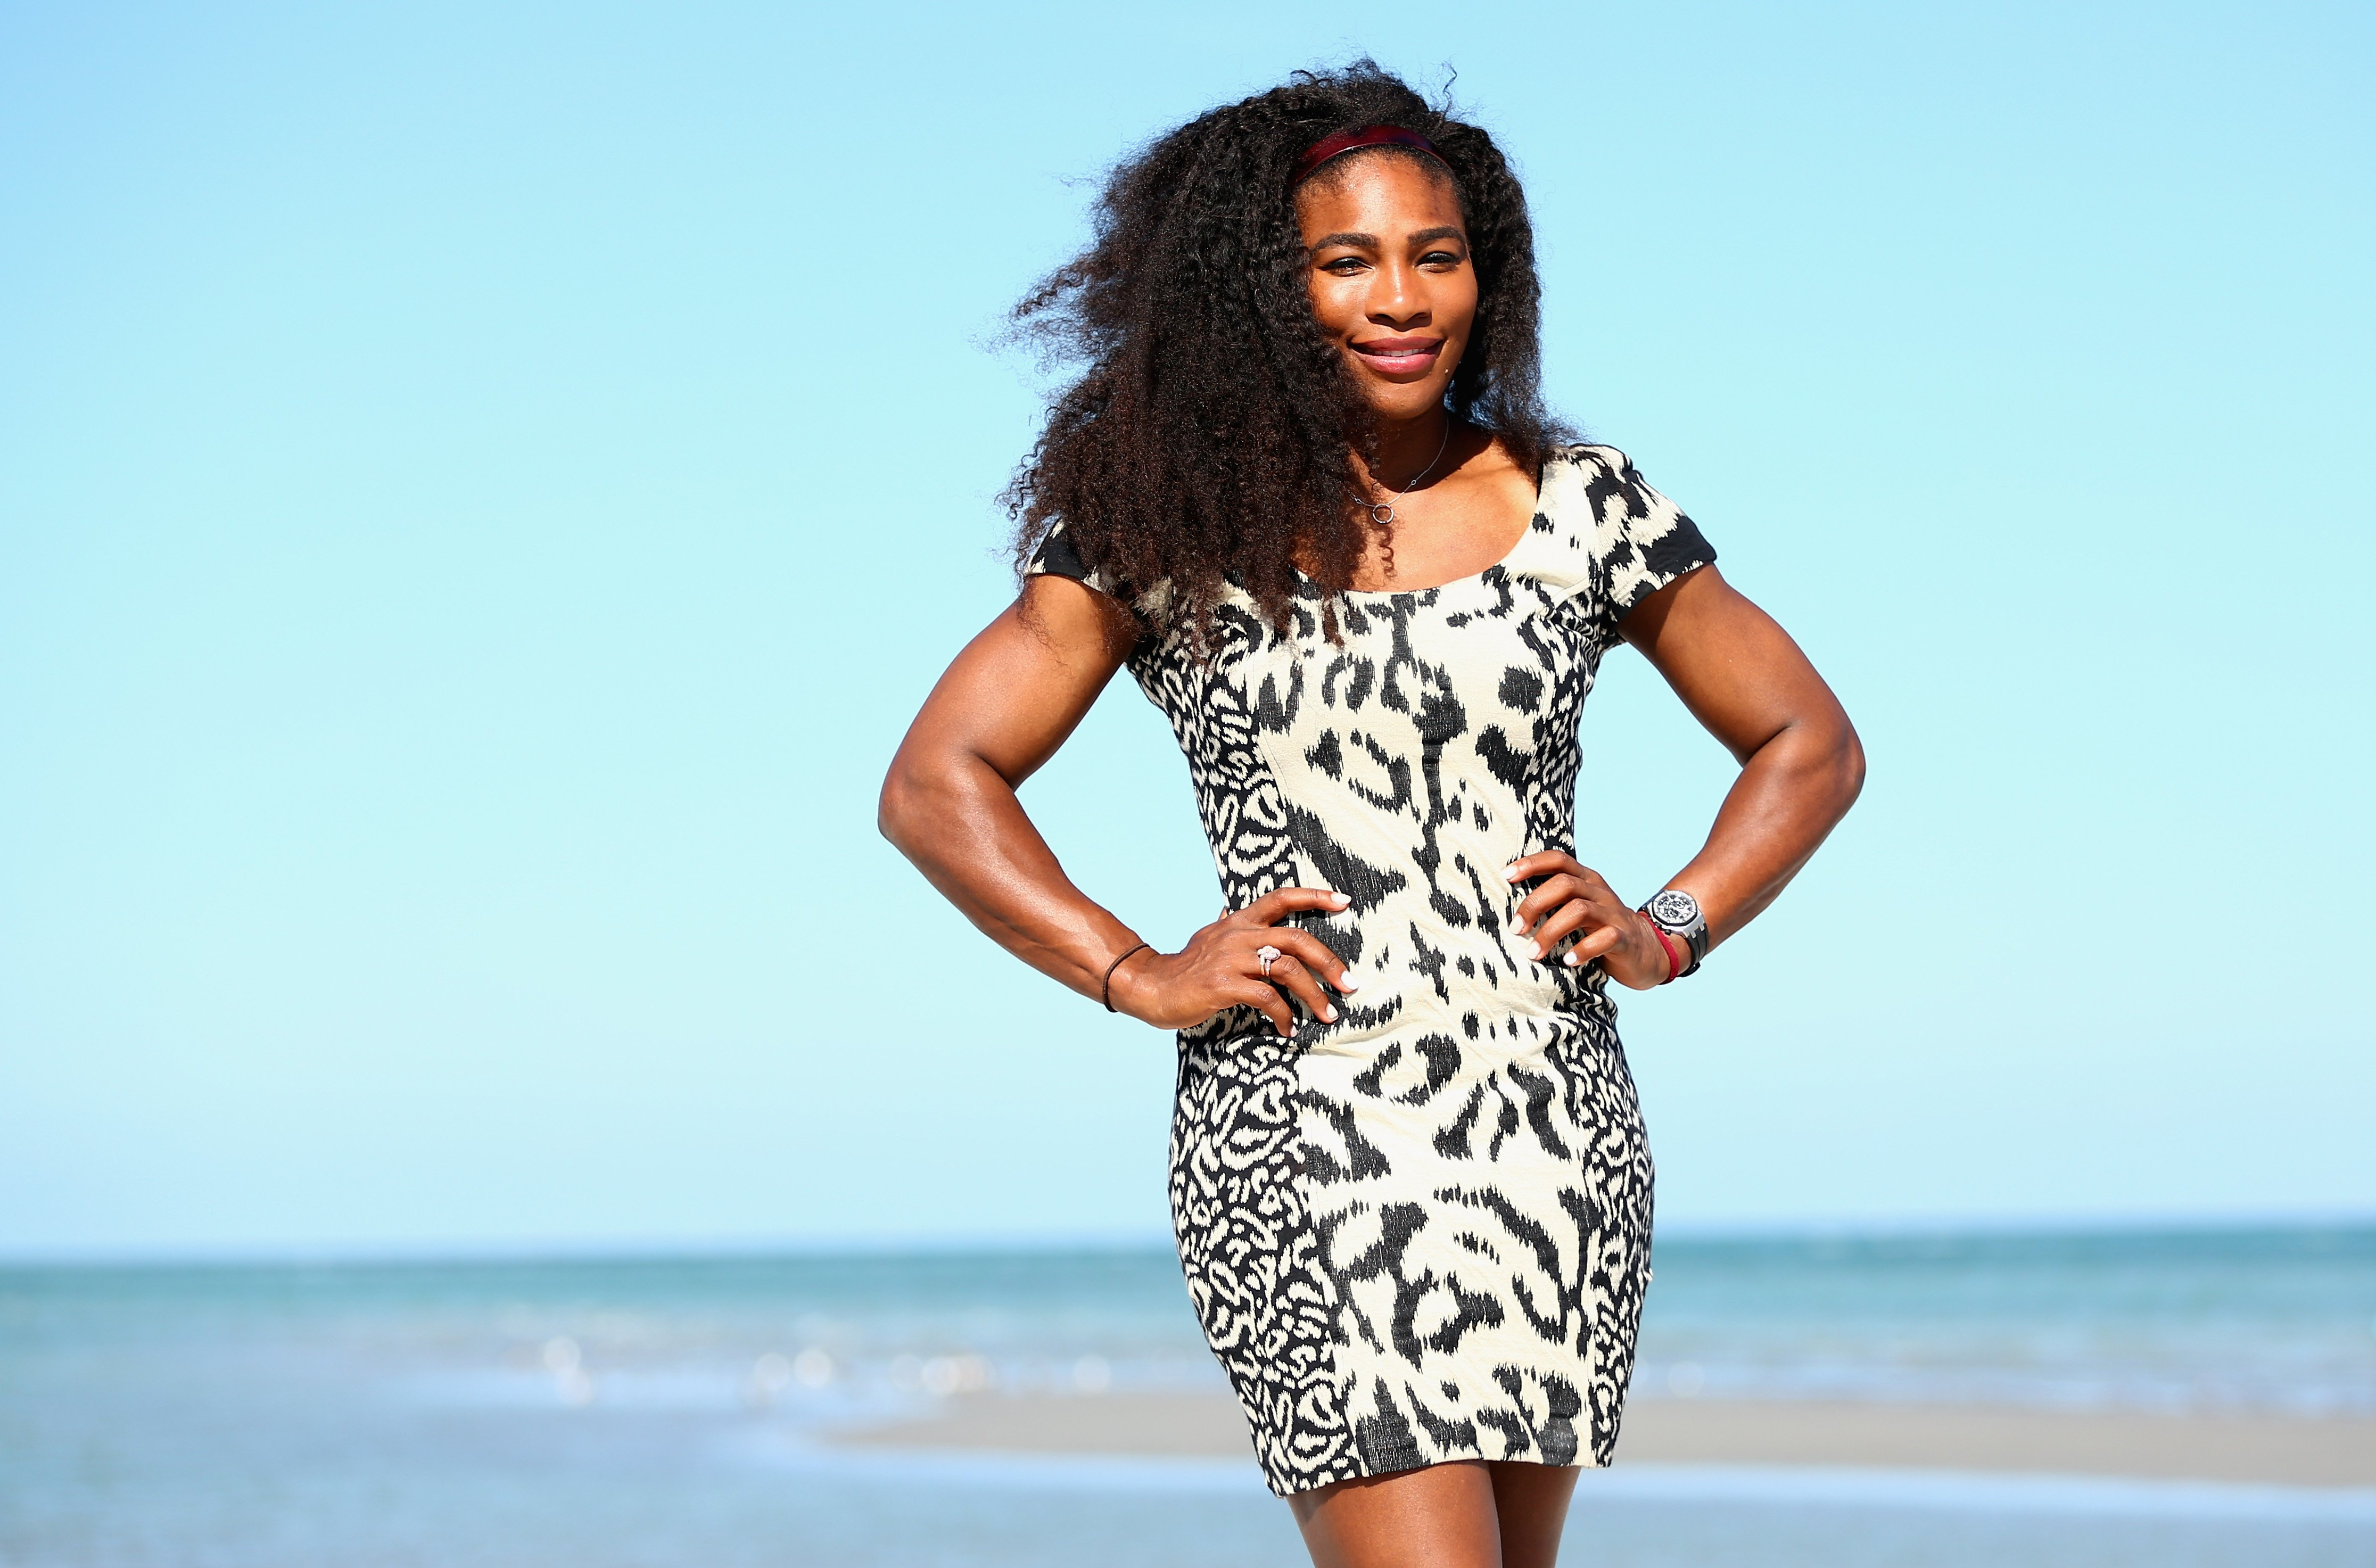 Serena Williams poses for a photograph during the Miami Open Presented by Itau on April 4, 2015 in Key Biscayne, Florida | Photo: Getty Images